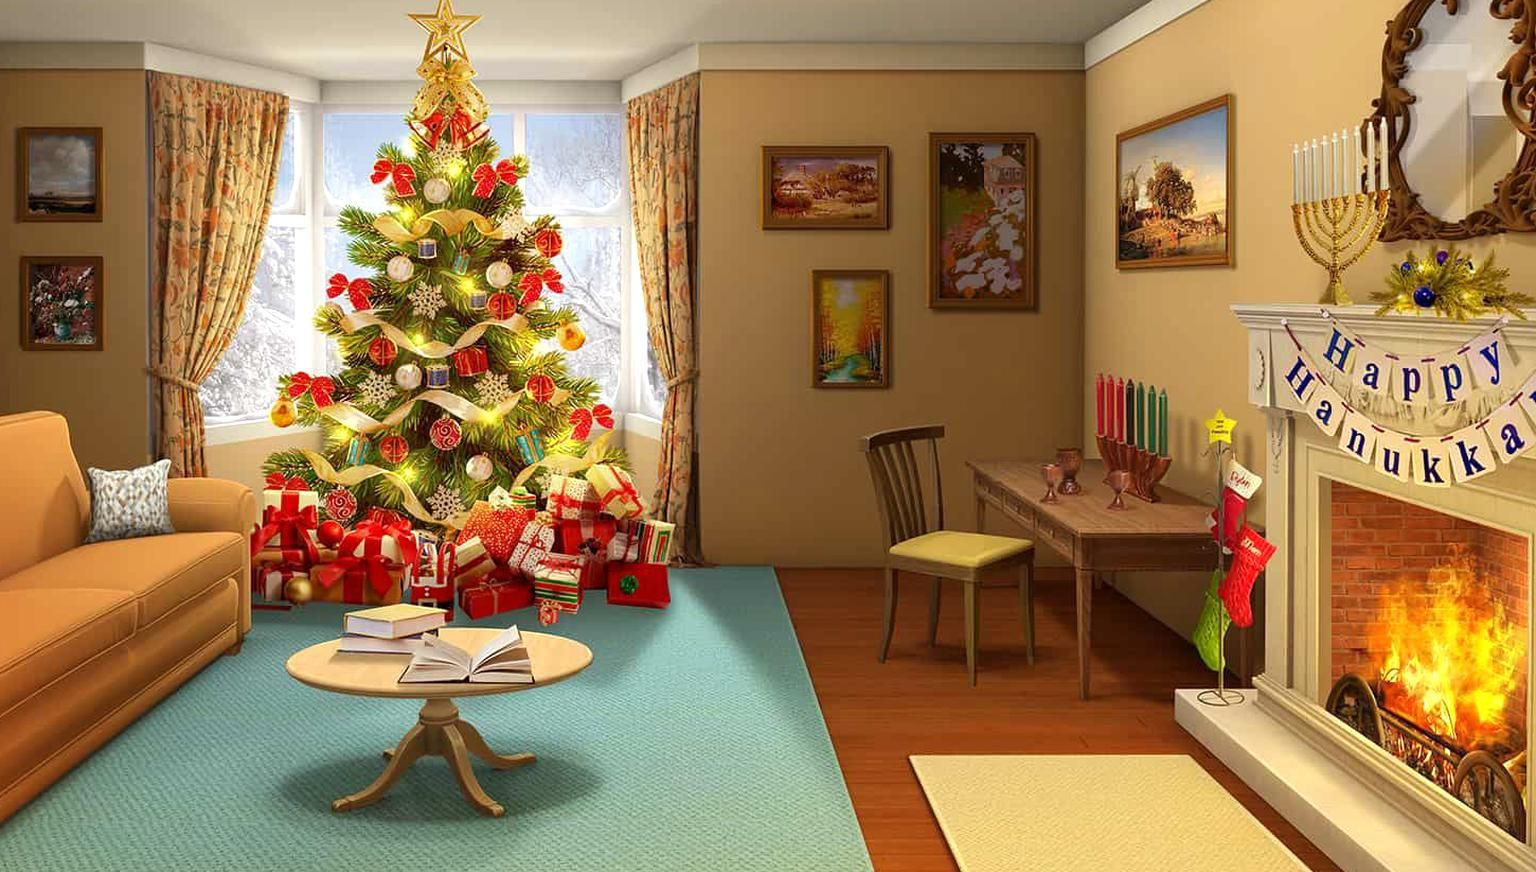 Pin By Alannah Mary On Quality Pins In 2020 Anime Christmas Christmas Wallpaper Backgrounds Christmas Theme Background